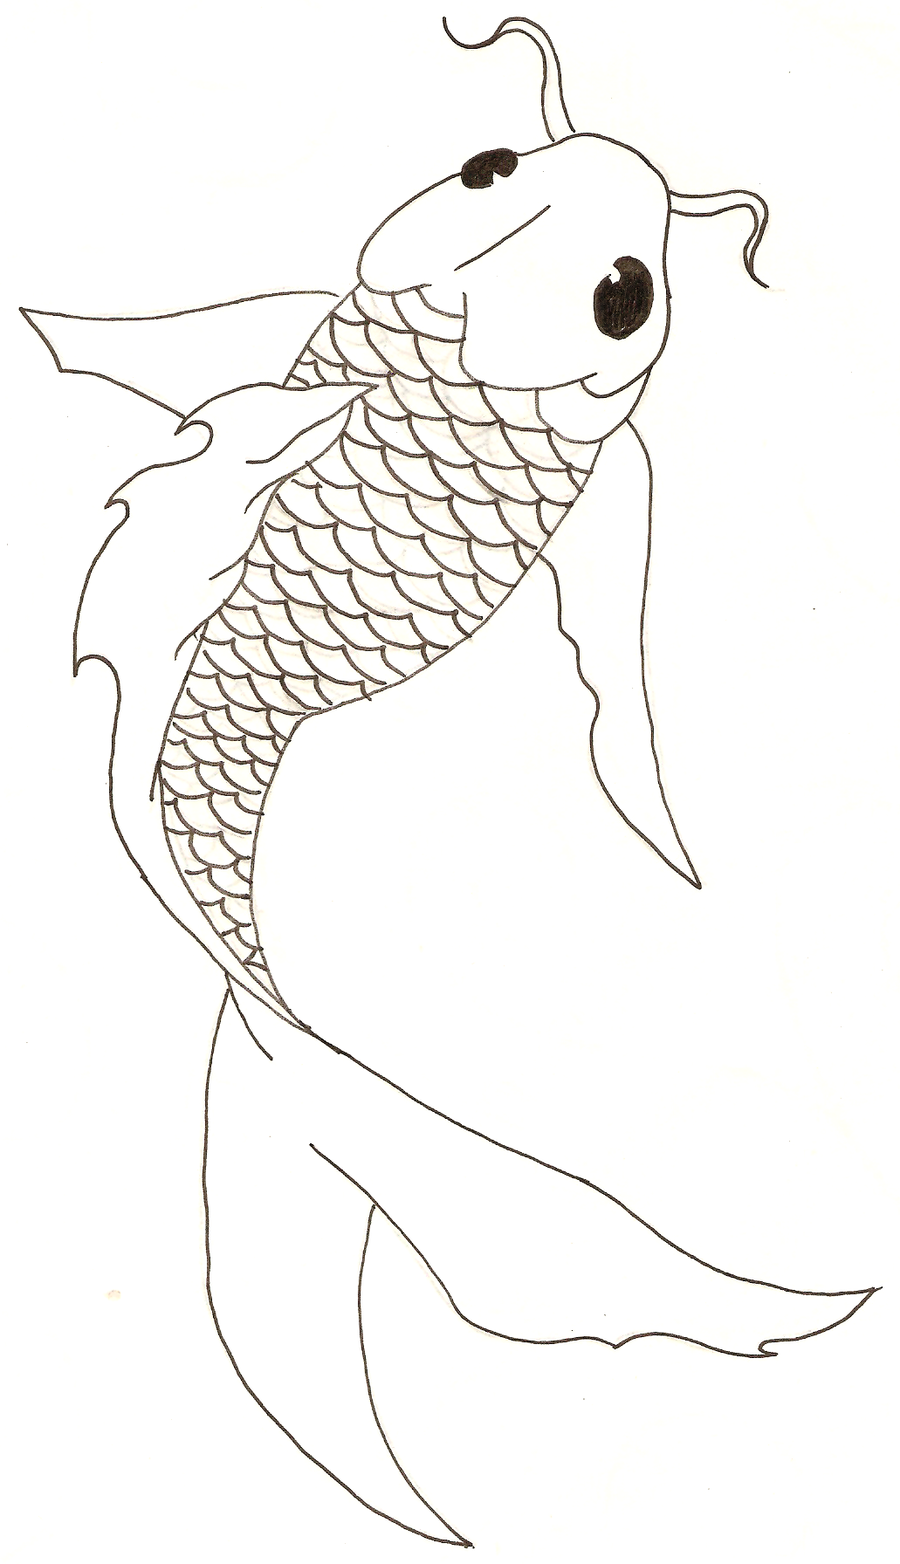 Simple Fish Drawing At Getdrawings Com Free For Personal Use